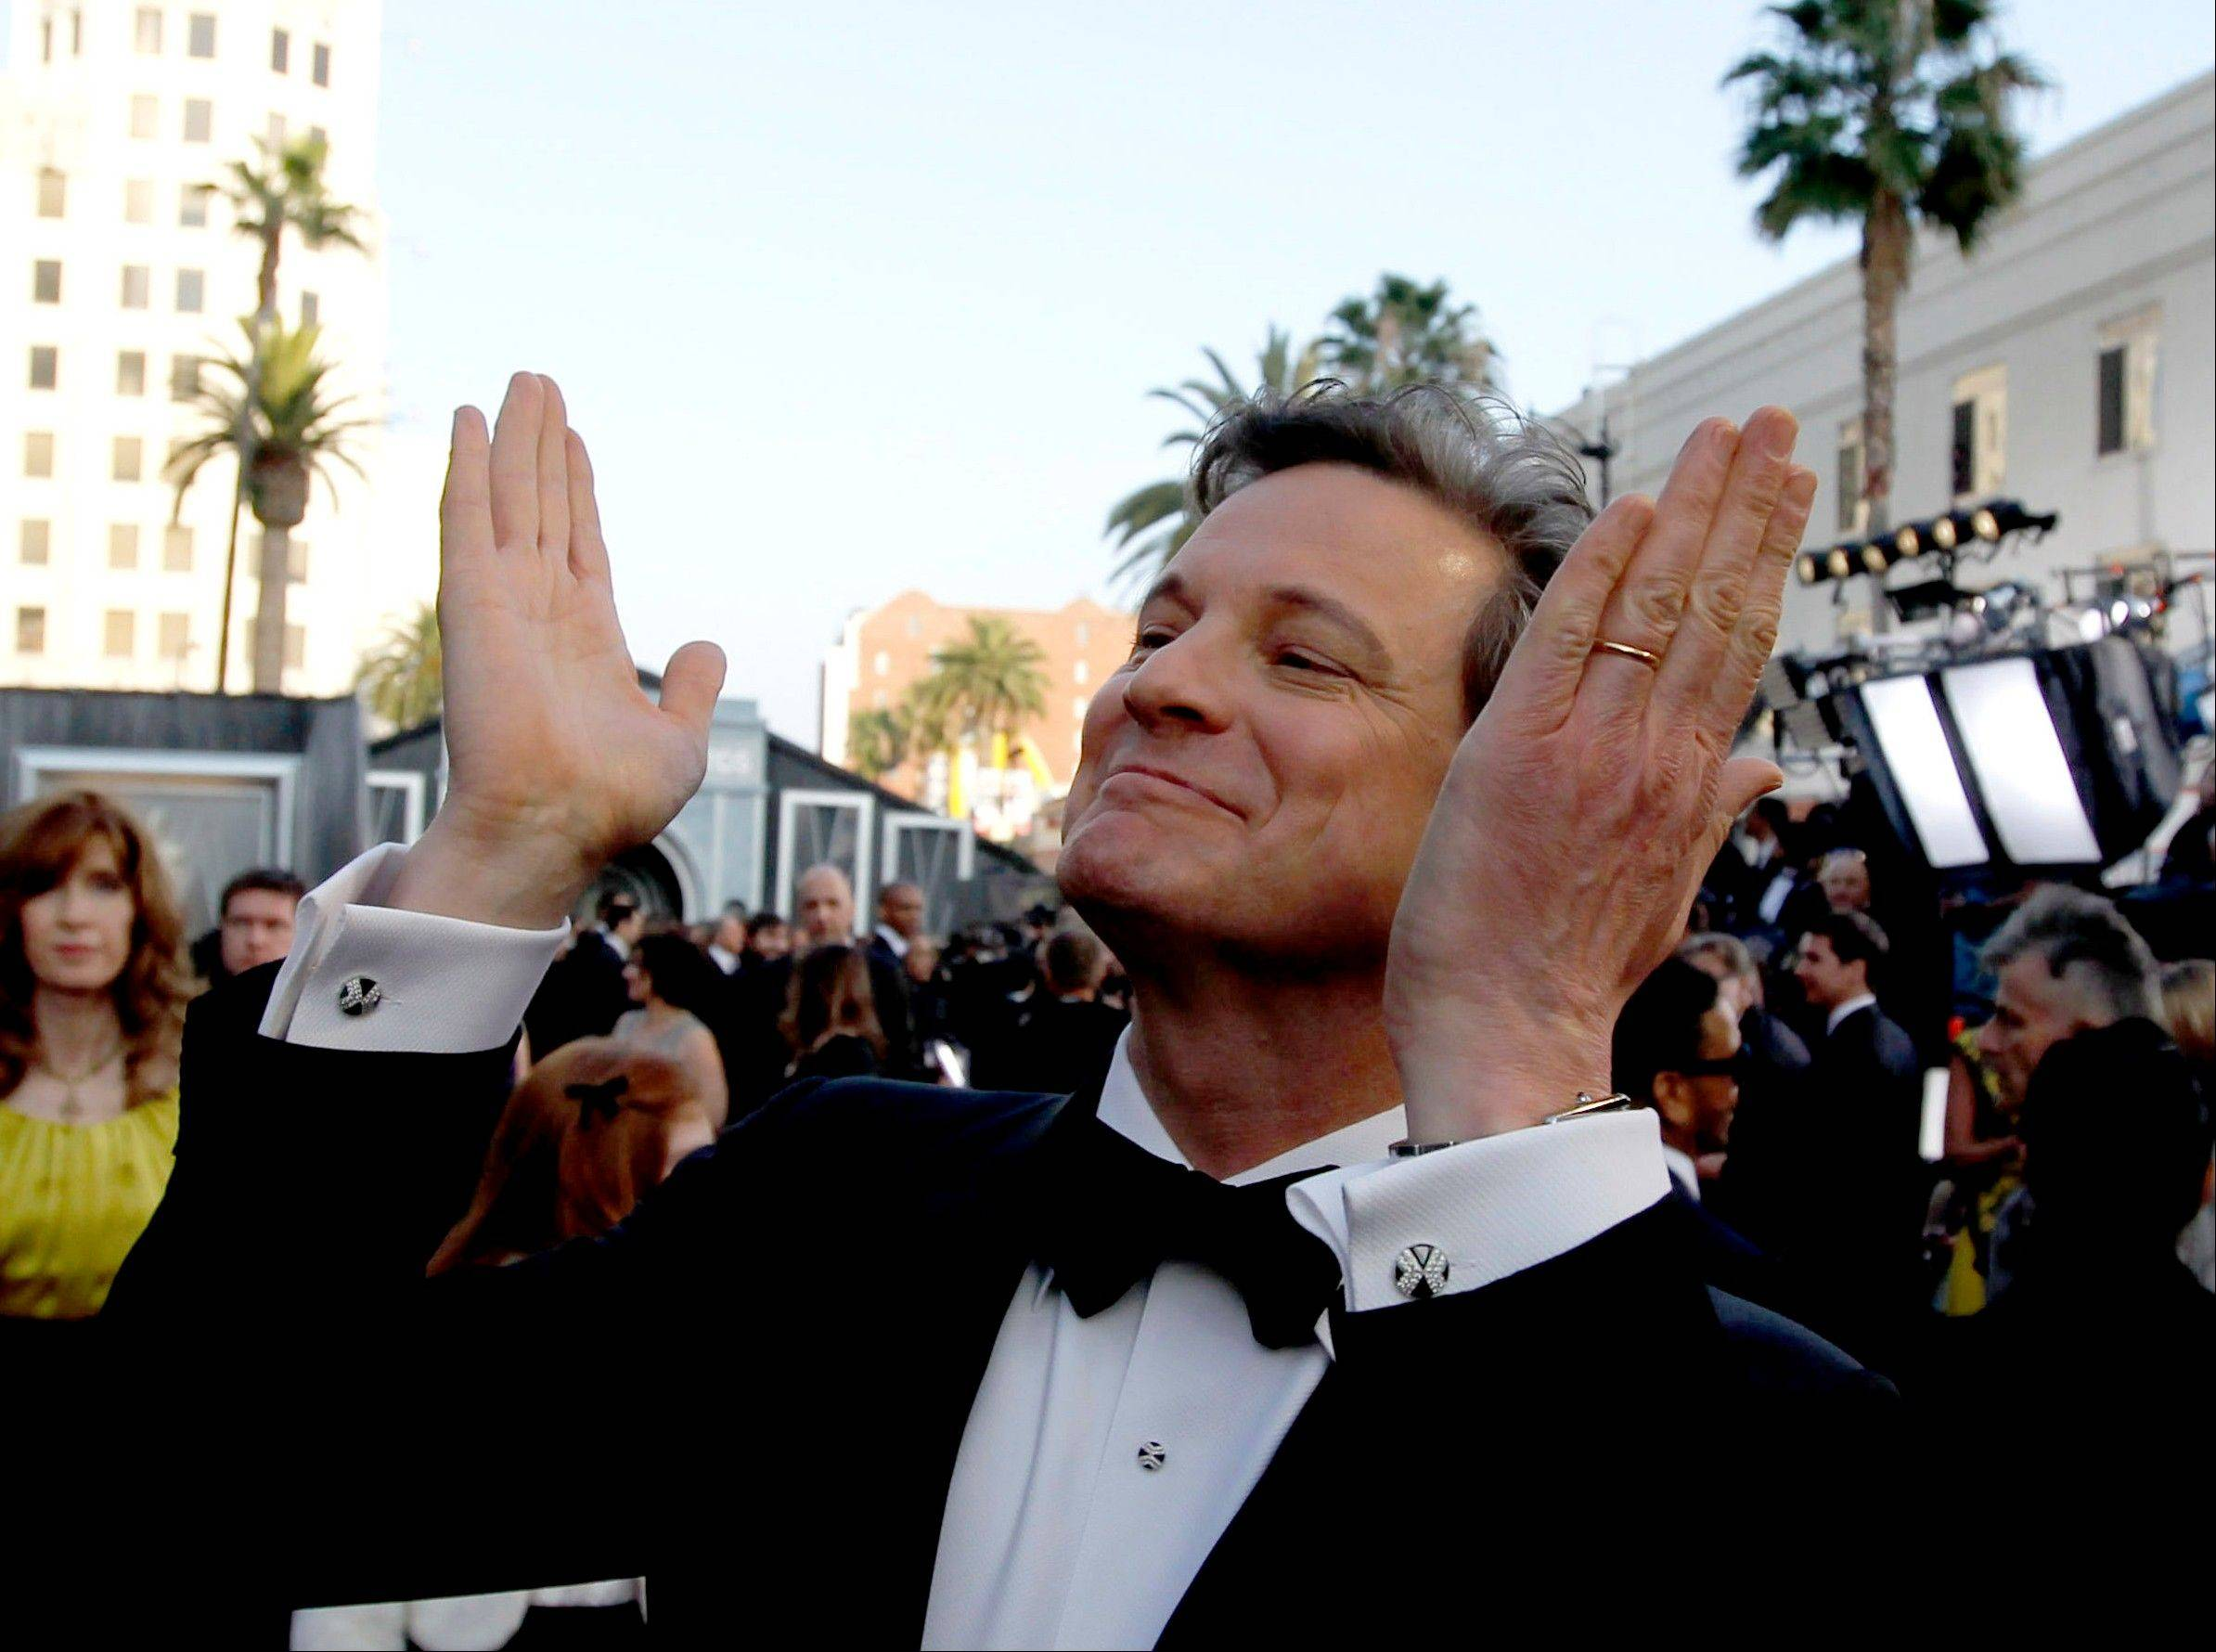 The debonair Colin Firth greets fans on the red carpet.